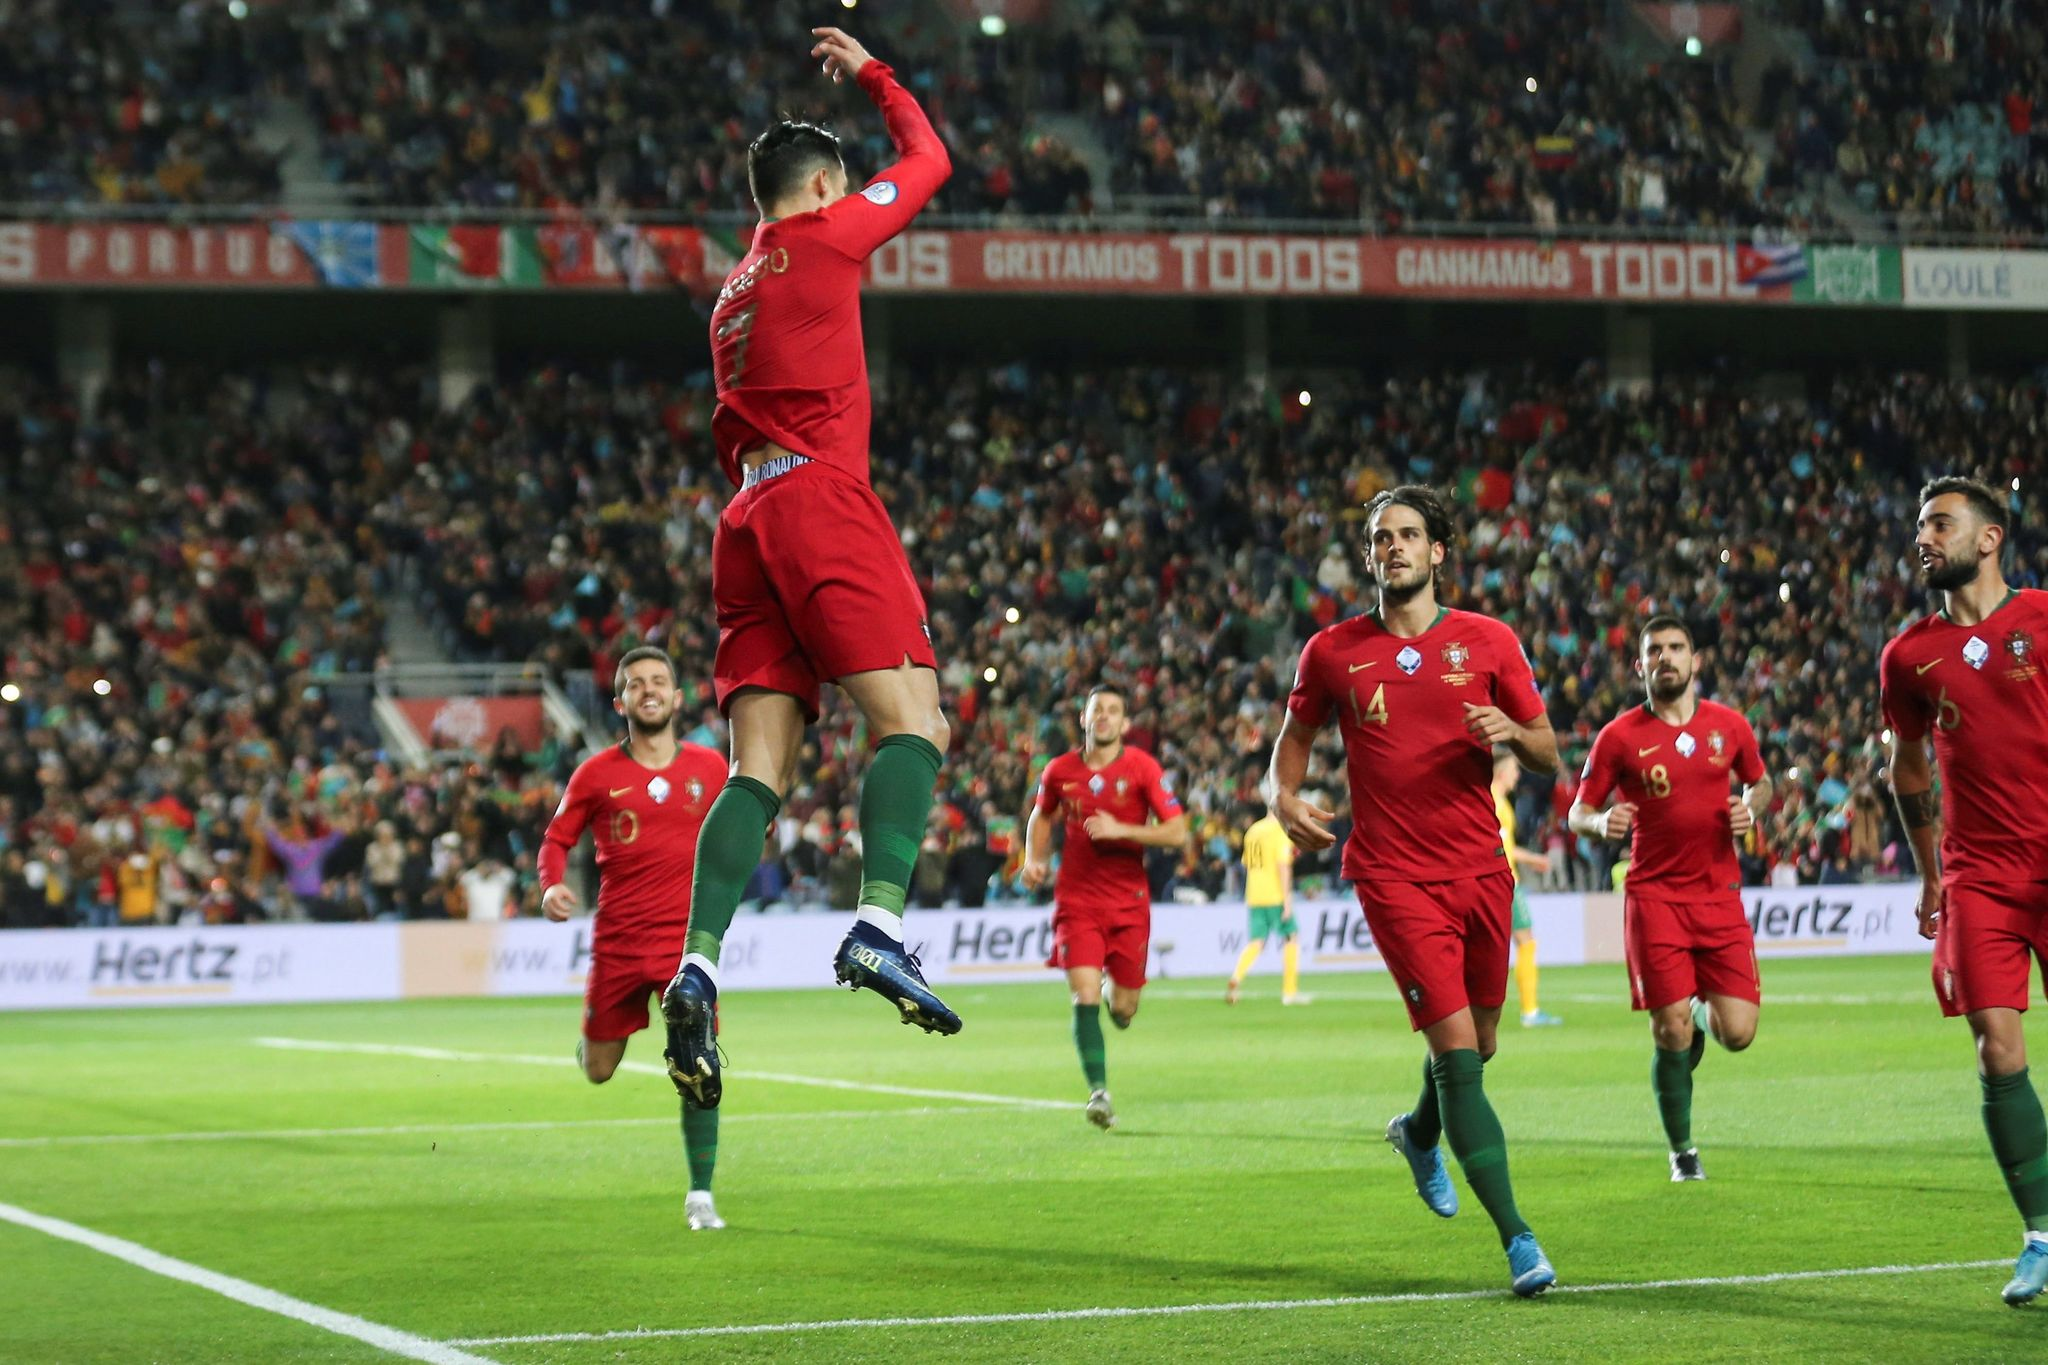 Ronaldo scores hat trick as Portugal routs Lithuania